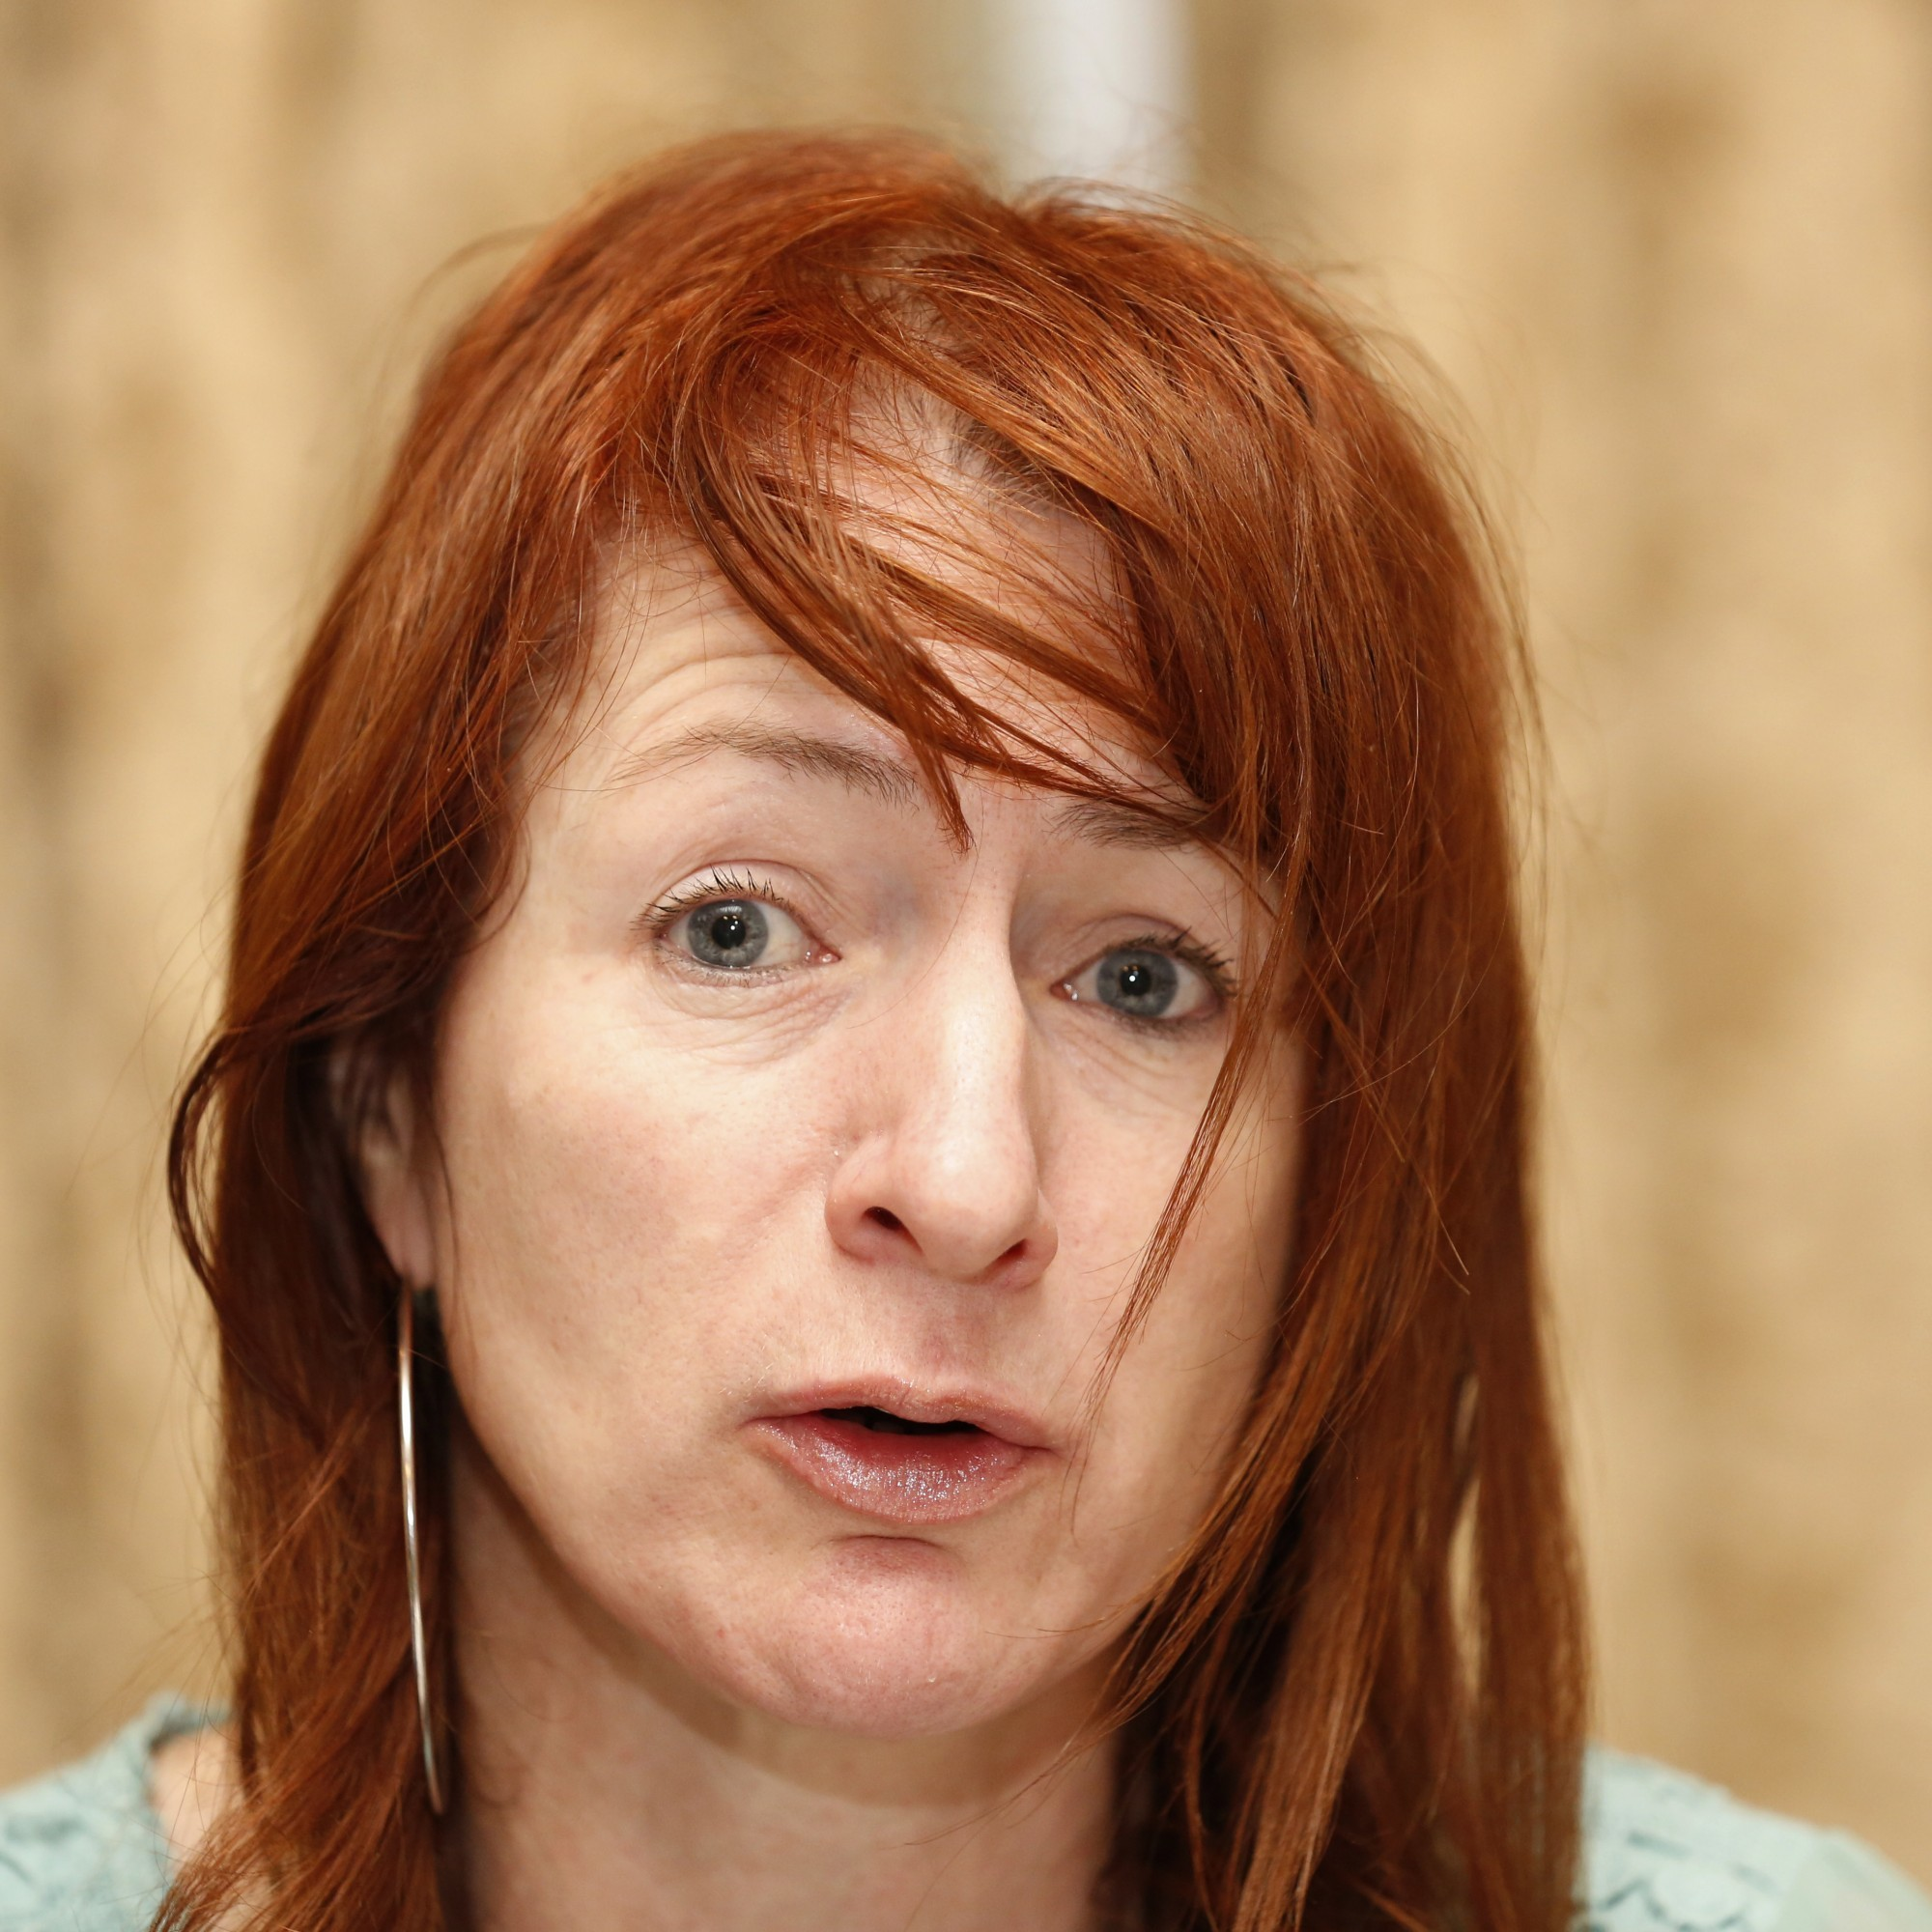 Amid Dáil uncertainty, Clare Daly reads letter from woman whose sister died by suicide